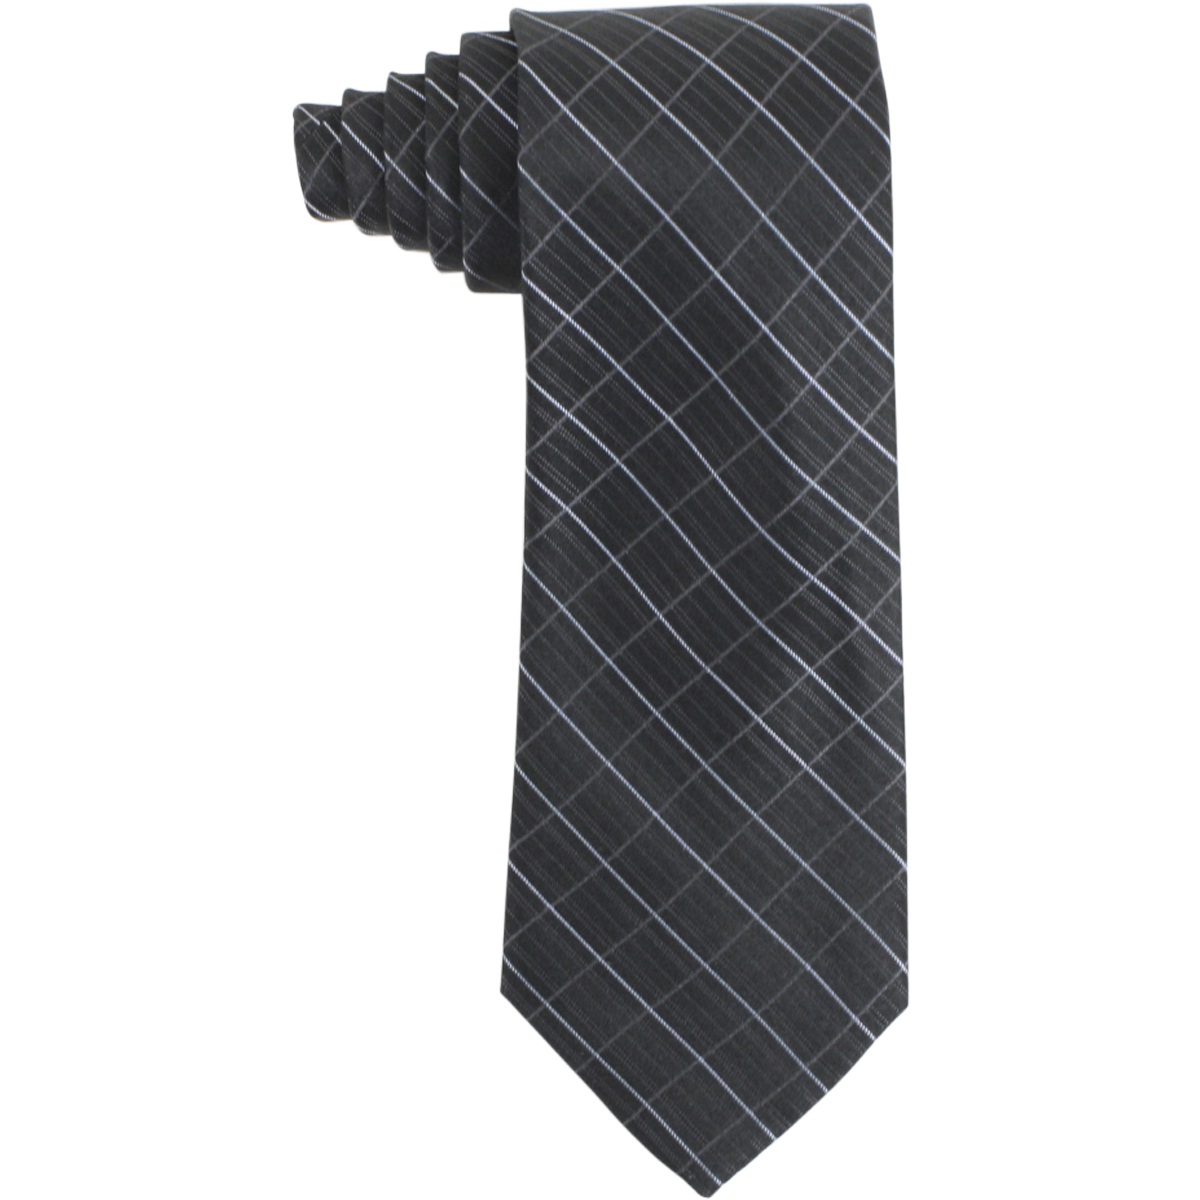 Image of Calvin Klein Men's Silk Etched Windowpane Pattern Tie - Black - 3 Inch